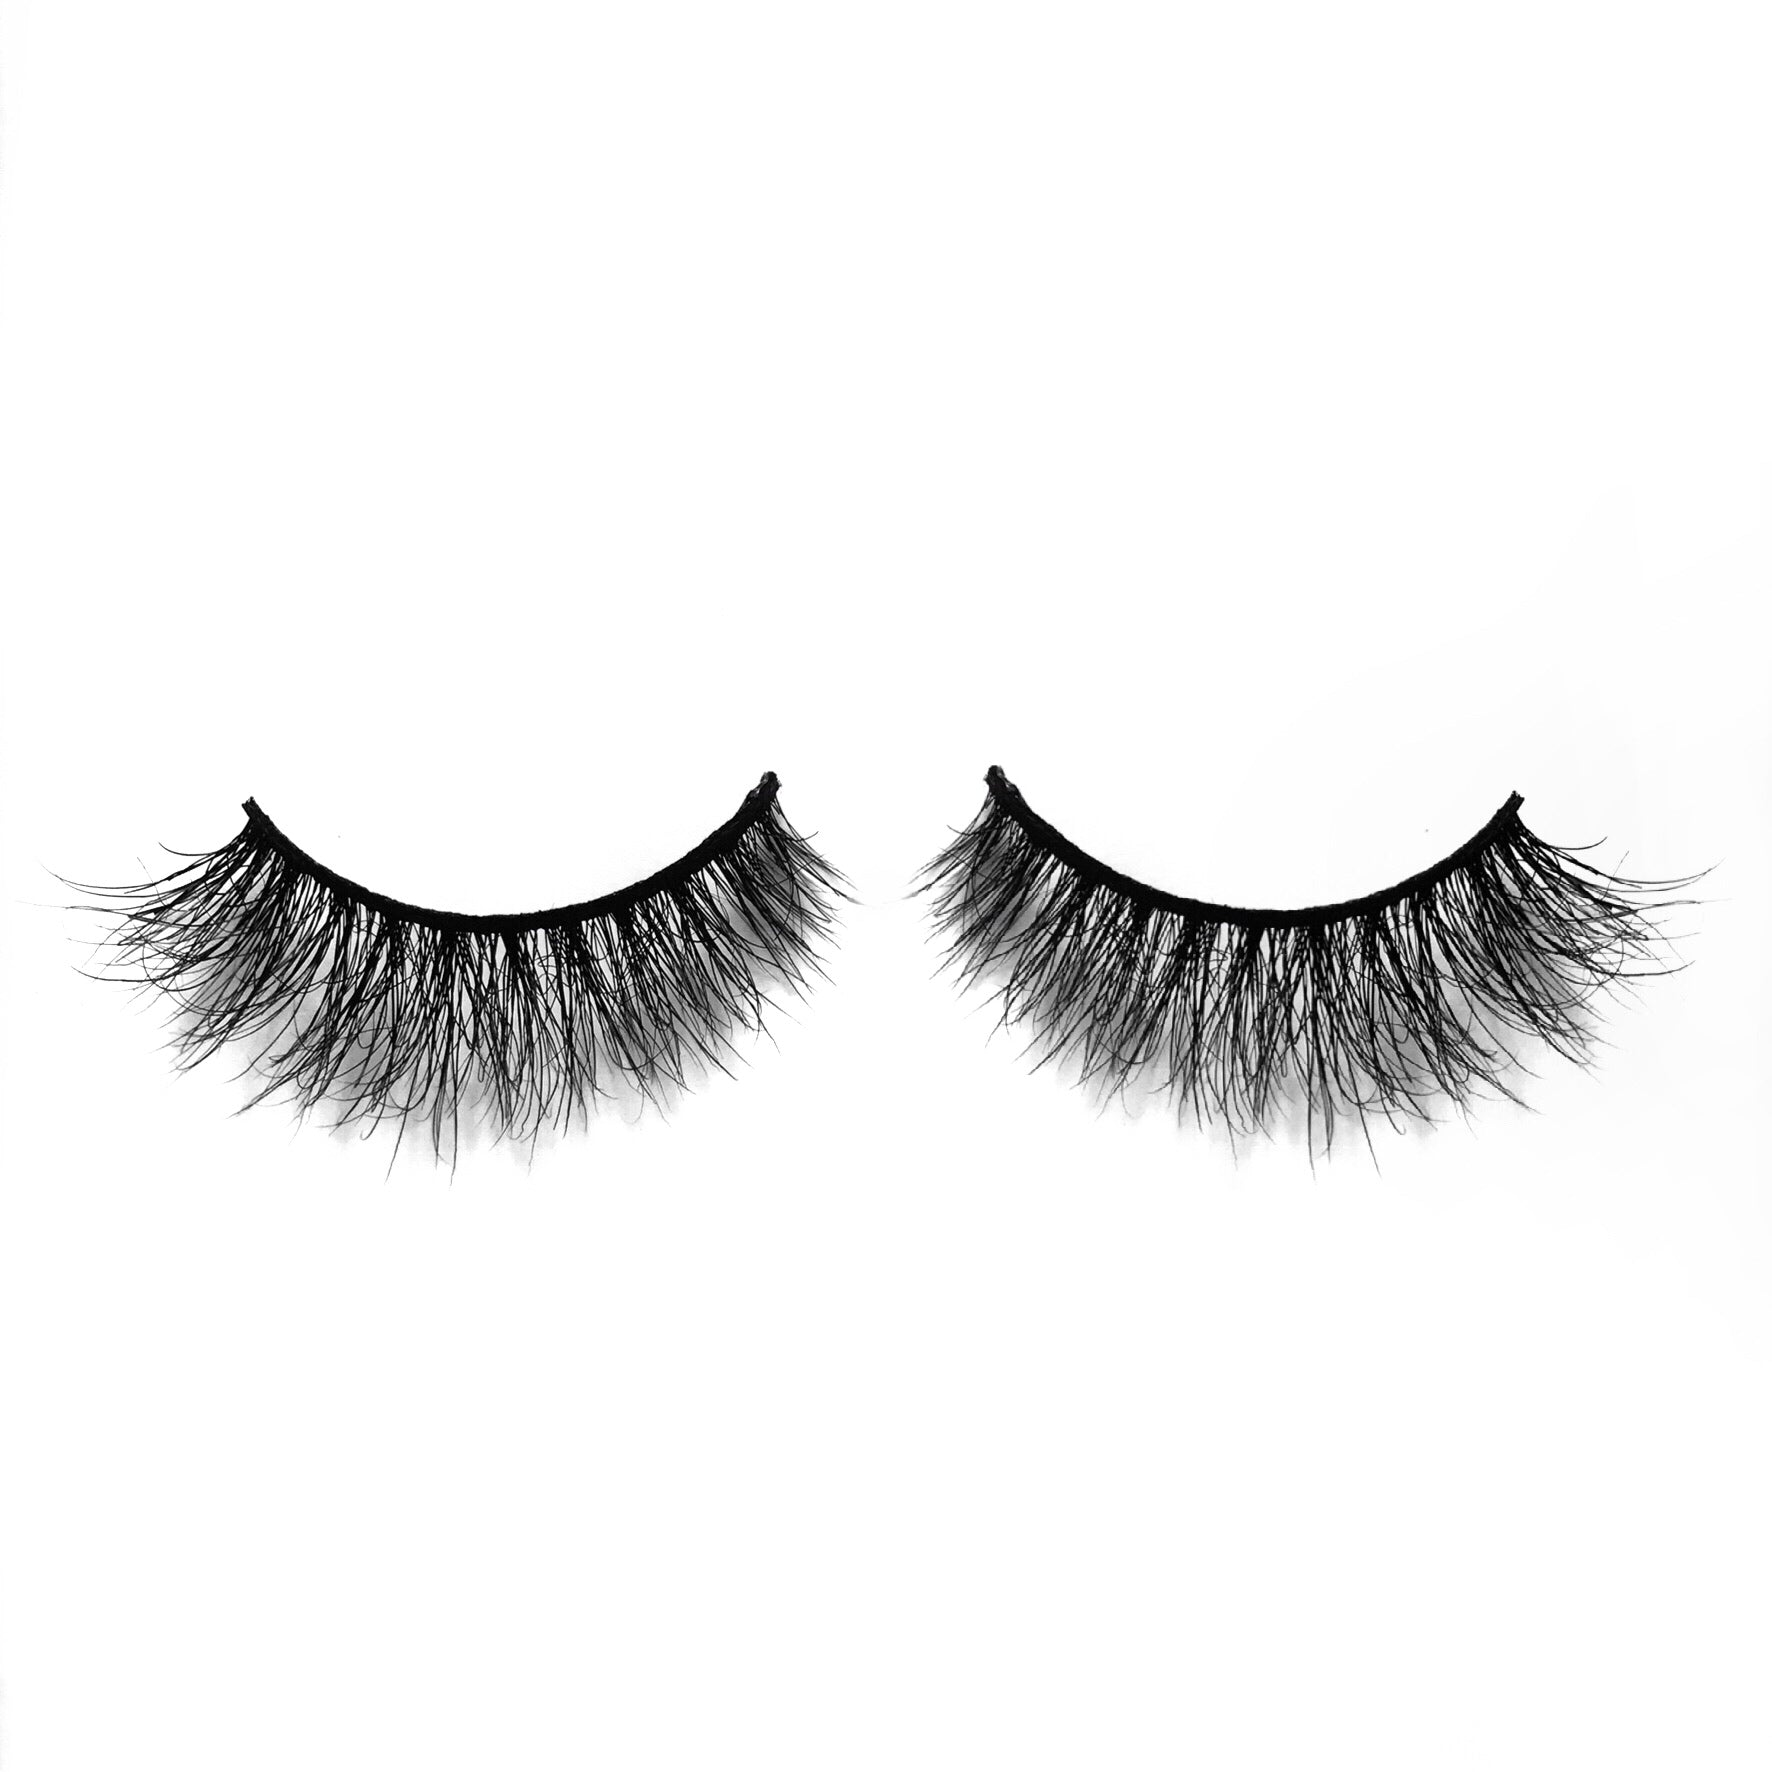 Spectacle - My Lash Wish